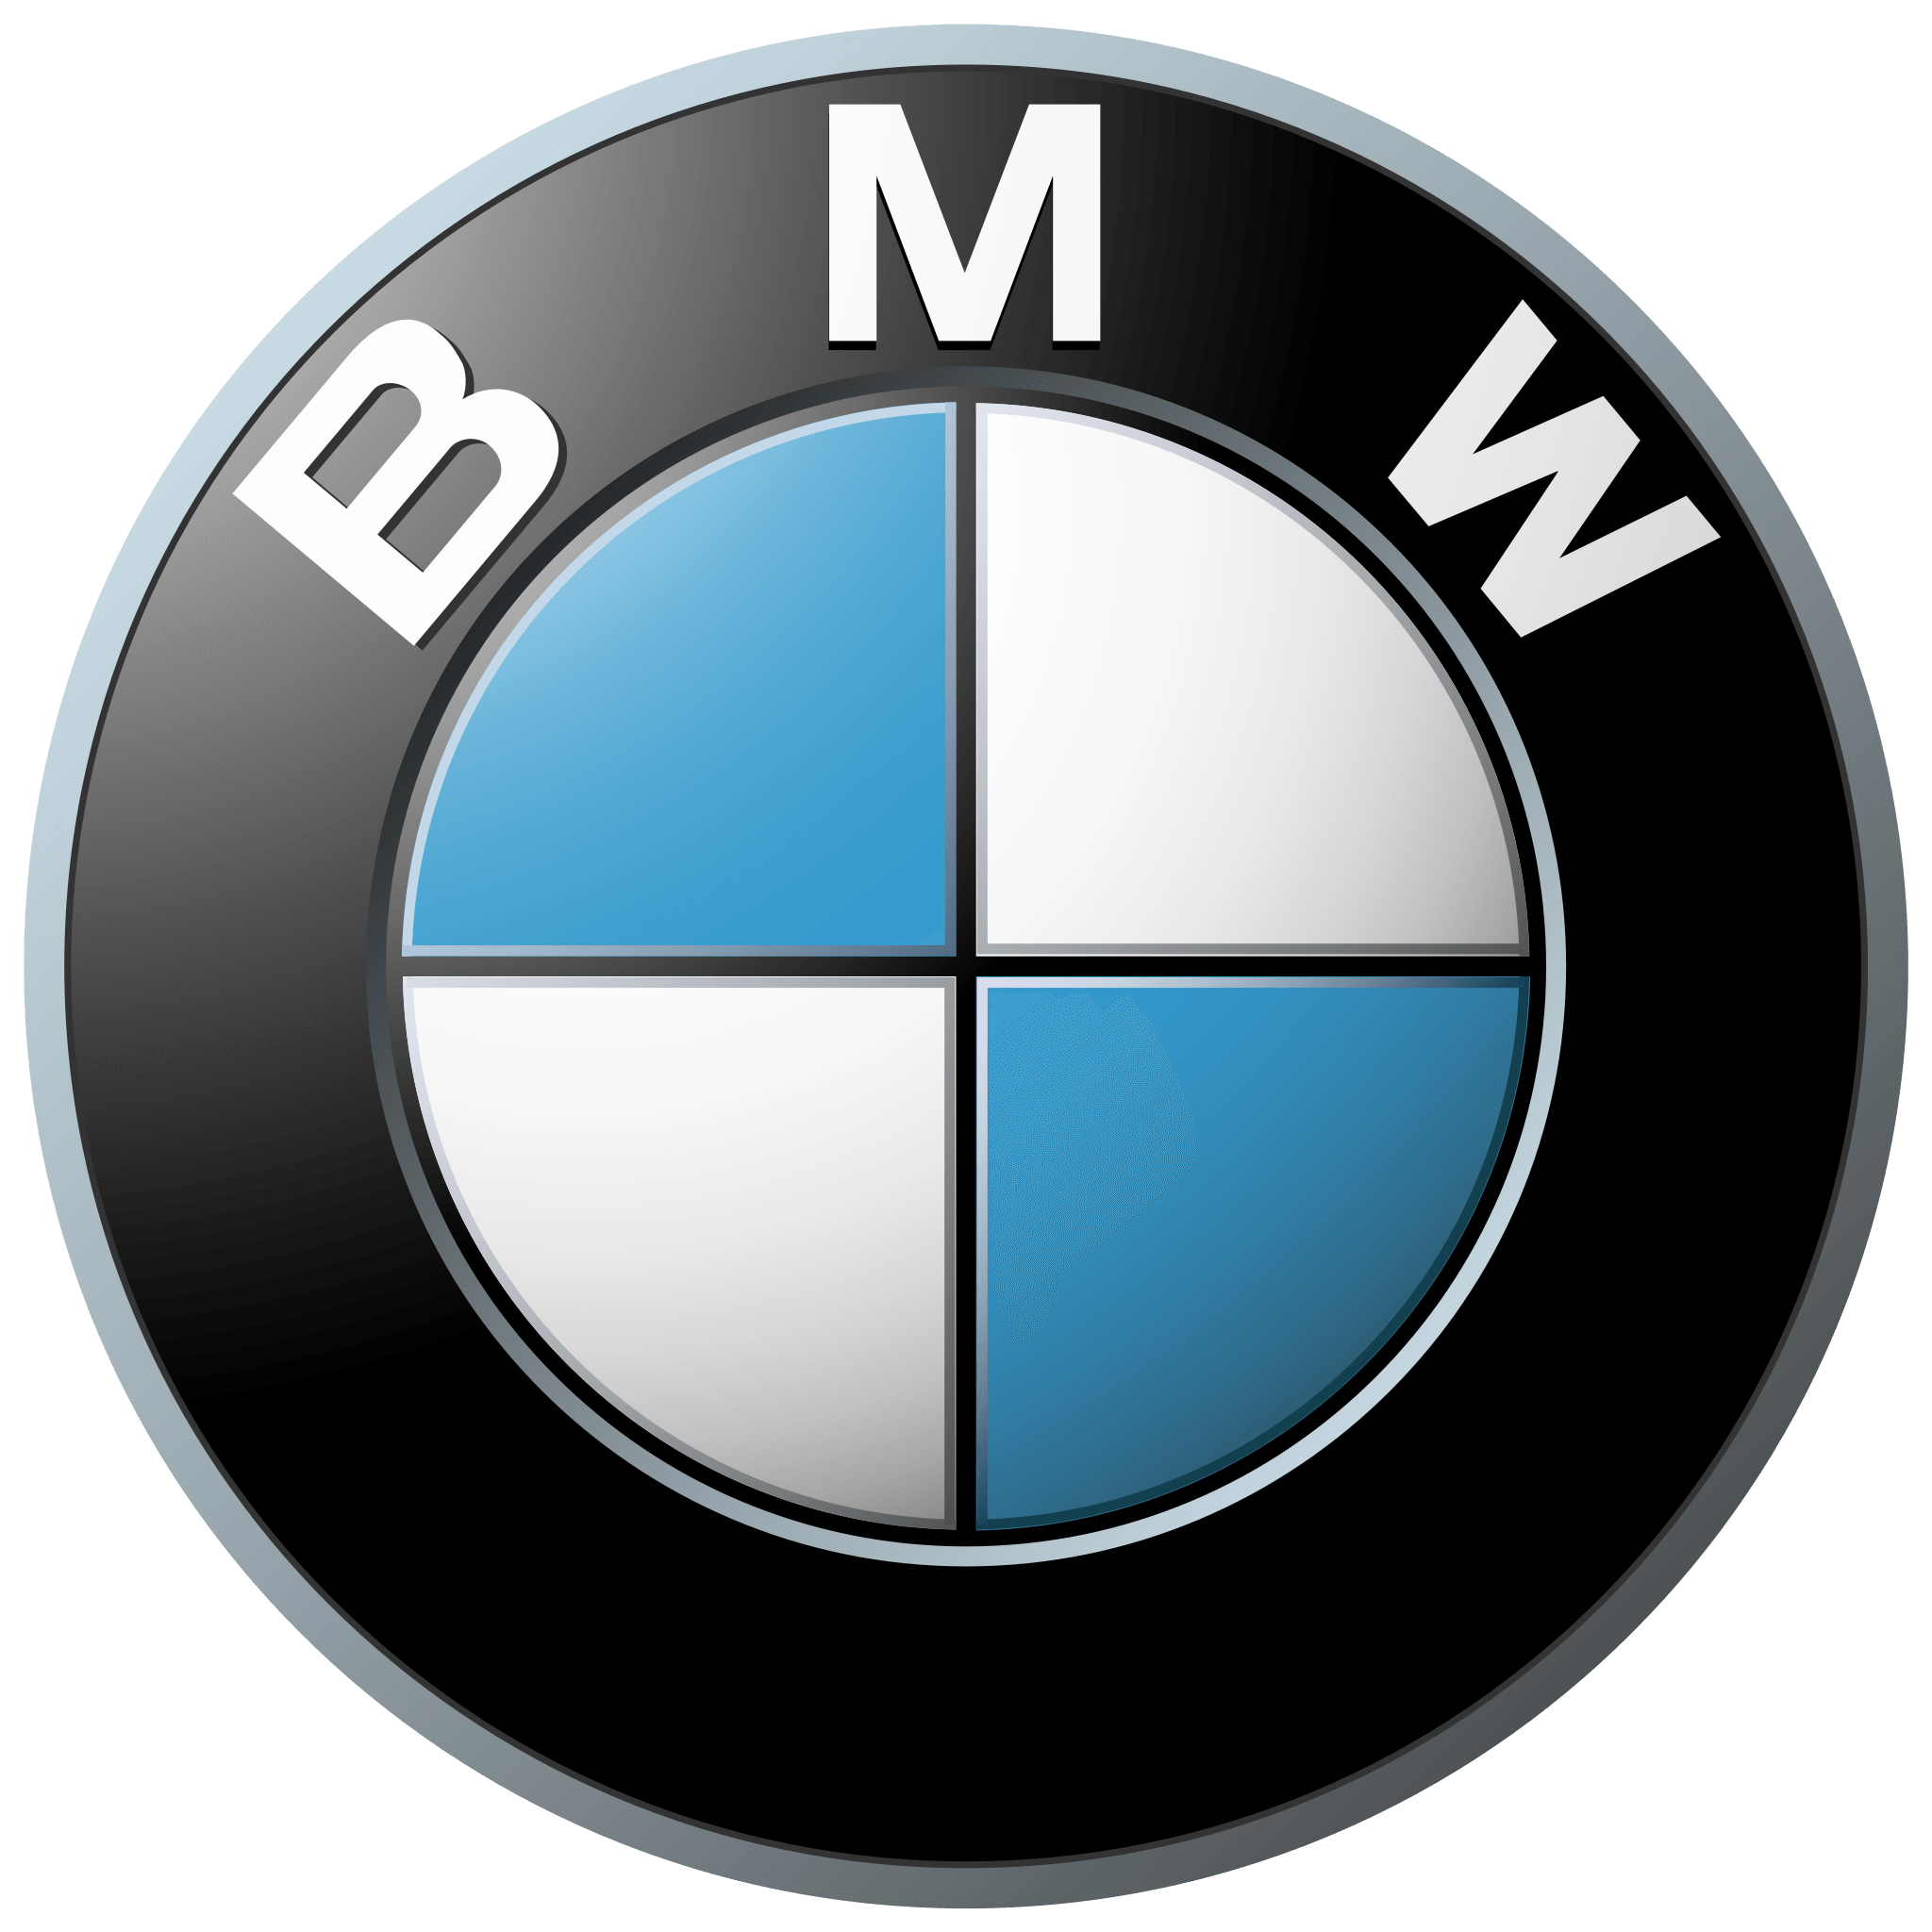 Car logo png. Bmw transparent stickpng